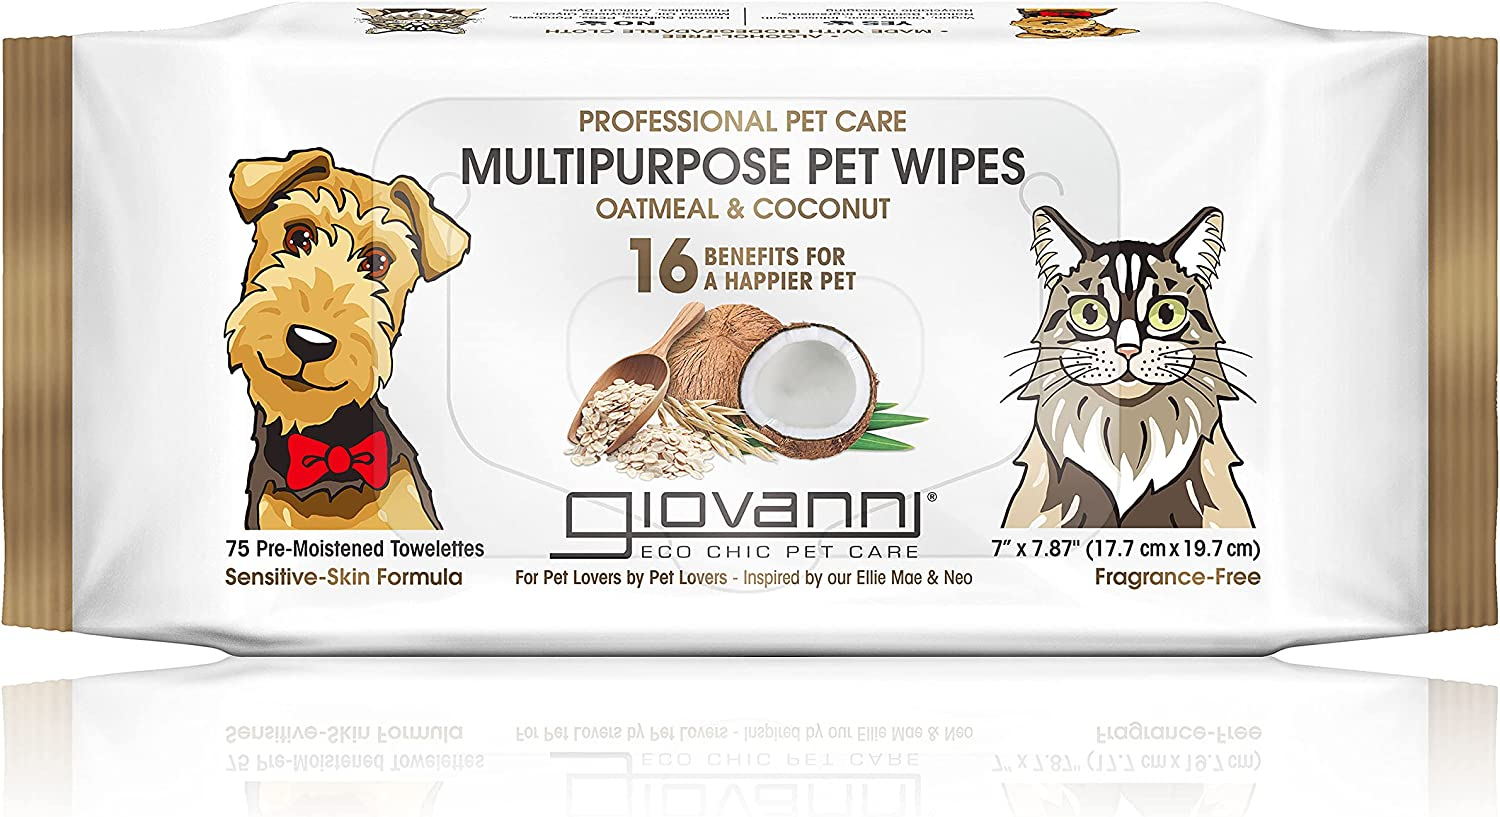 GIOVANNI Multipurpose Pet Wipes Max 84% OFF Pack Coc 75 of Oatmeal – Very popular